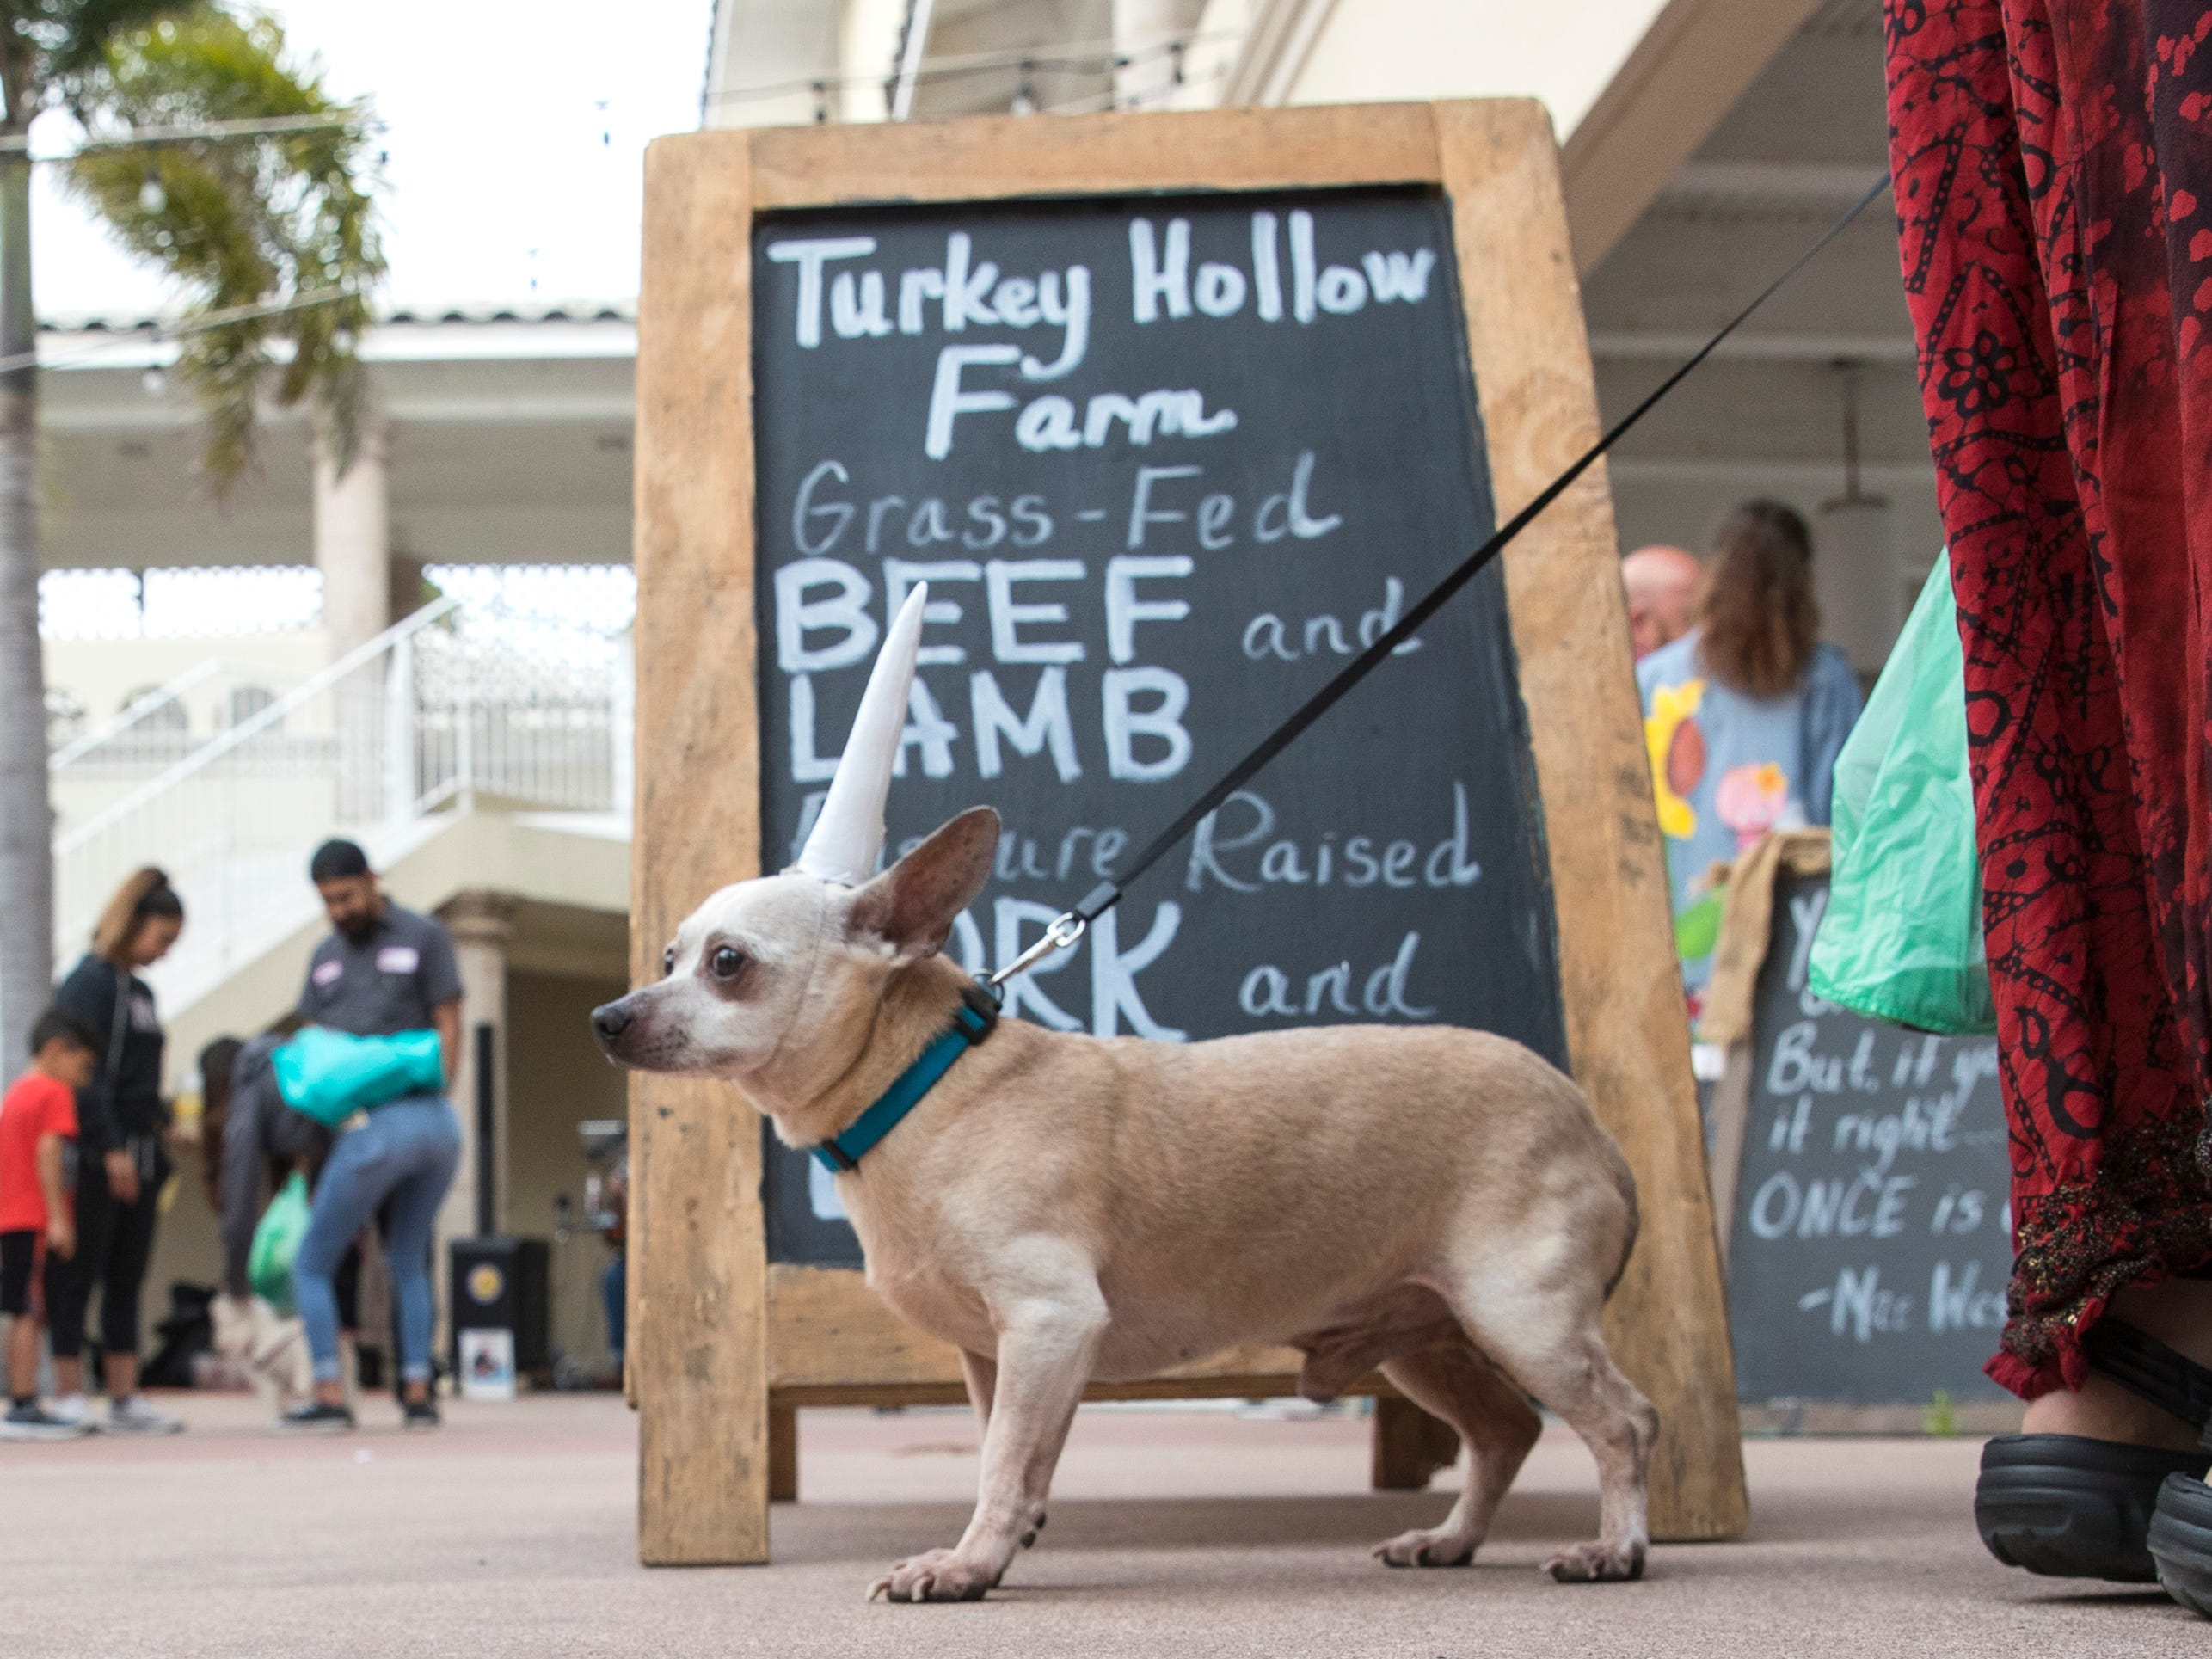 Fry visits the Corpus Christi Downtown Farmers Market on Wednesday, April 24, 2019. The market is pet-friendly and offers a variety of seasonal produce. It is open weekly on Wednesday from 5 to 8 pm at 100 N. Shoreline Blvd.